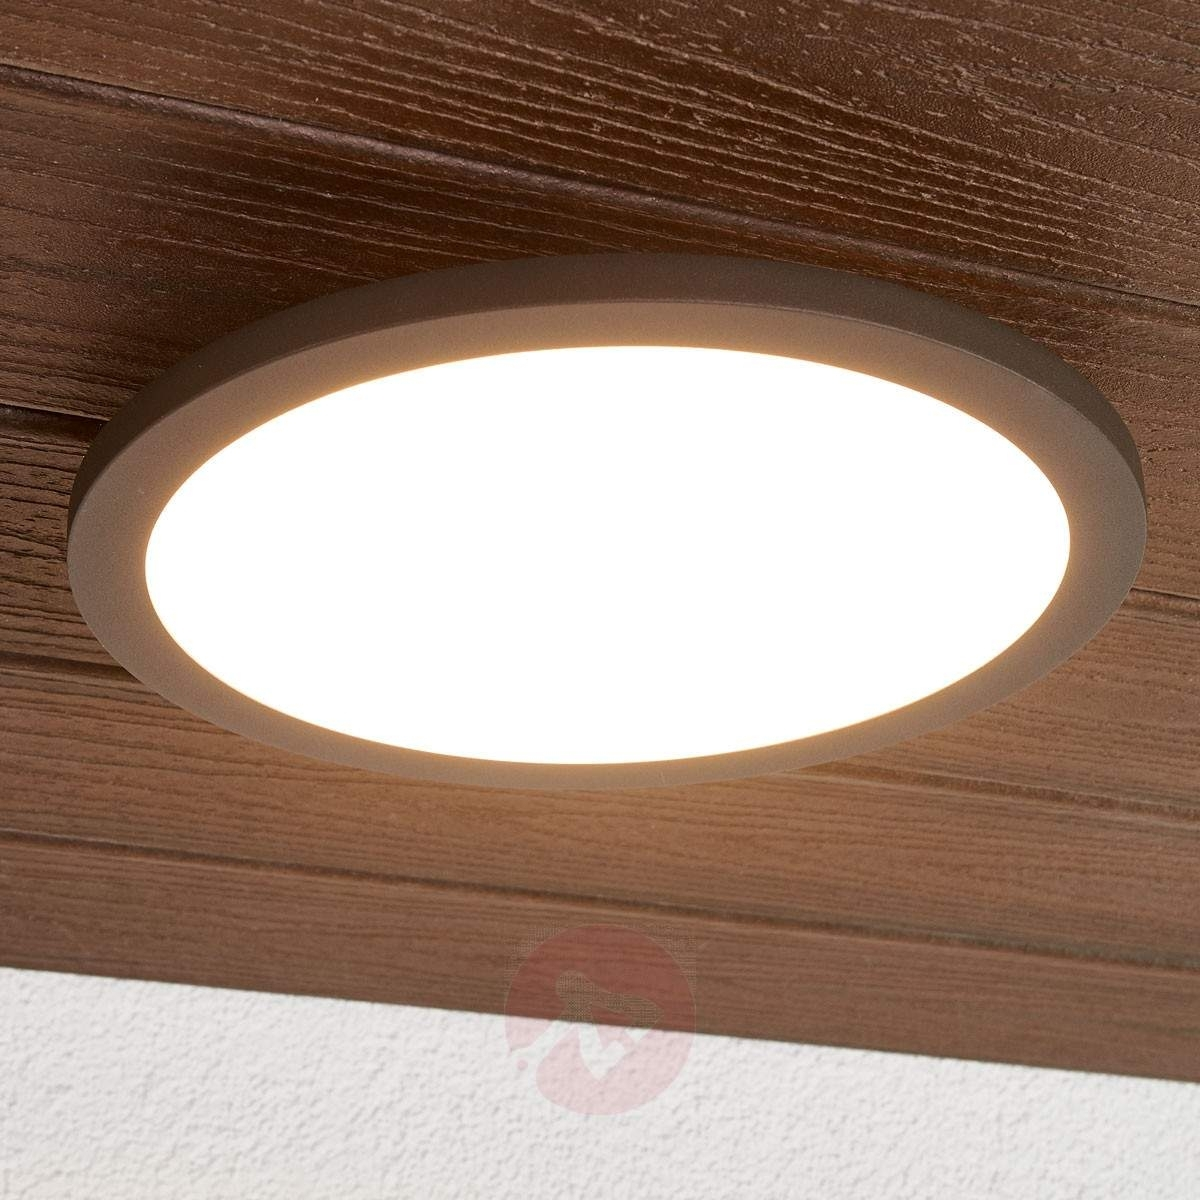 Led Outdoor Ceiling Light Malena With Sensor | Lights.co (#7 of 15)